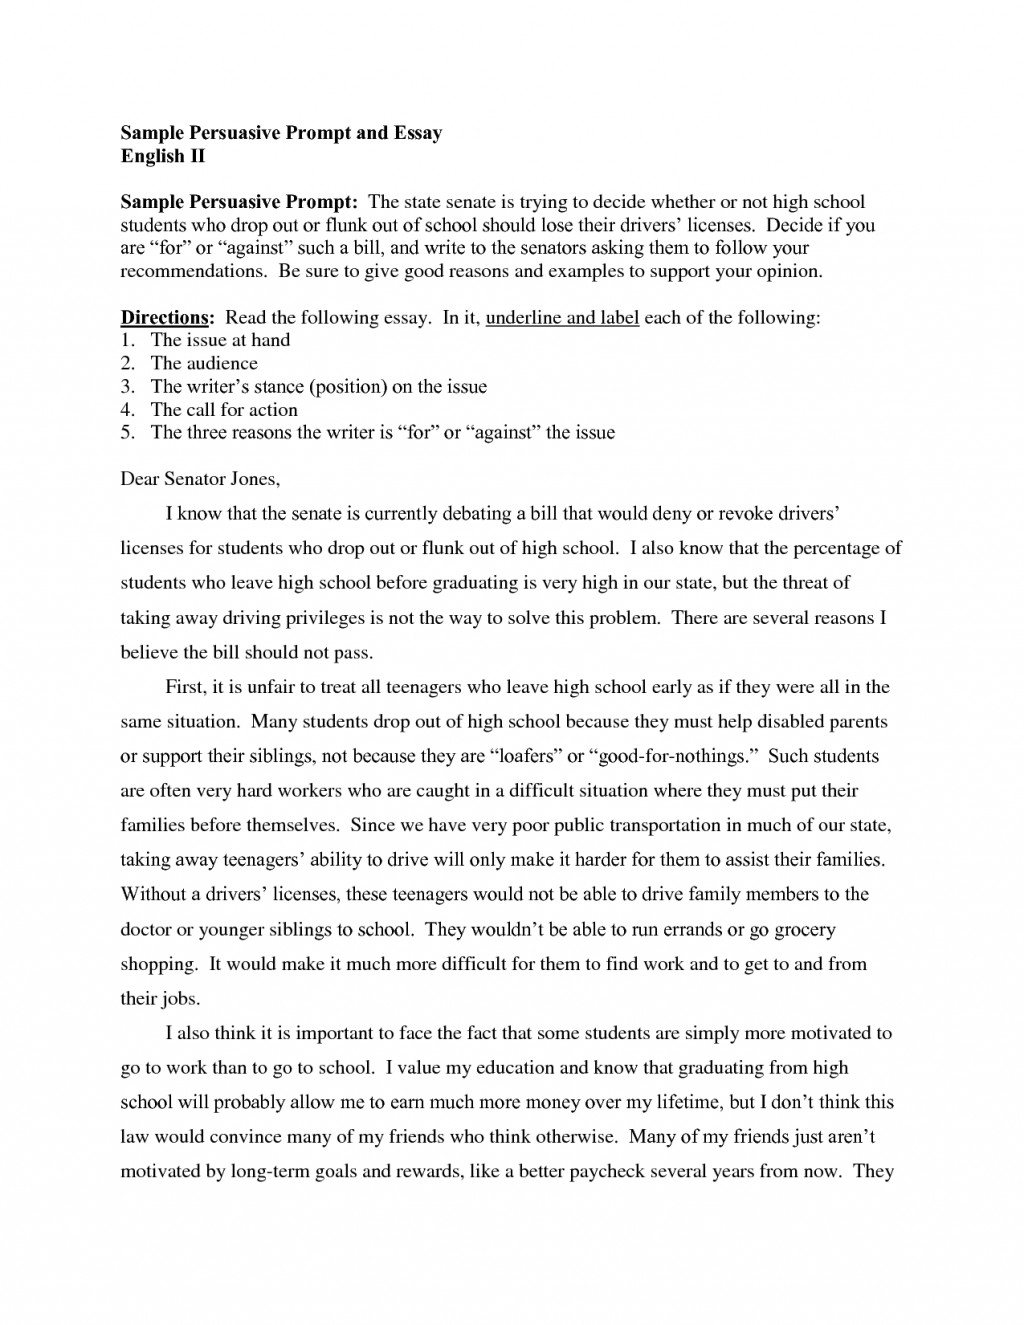 022 Research Paper Argumentative Topics Example Persuasive Essay For High School Sample Ideas Highschool Students Good Prompt Funny Easy Fun List Of Seniors Writing English Top Large